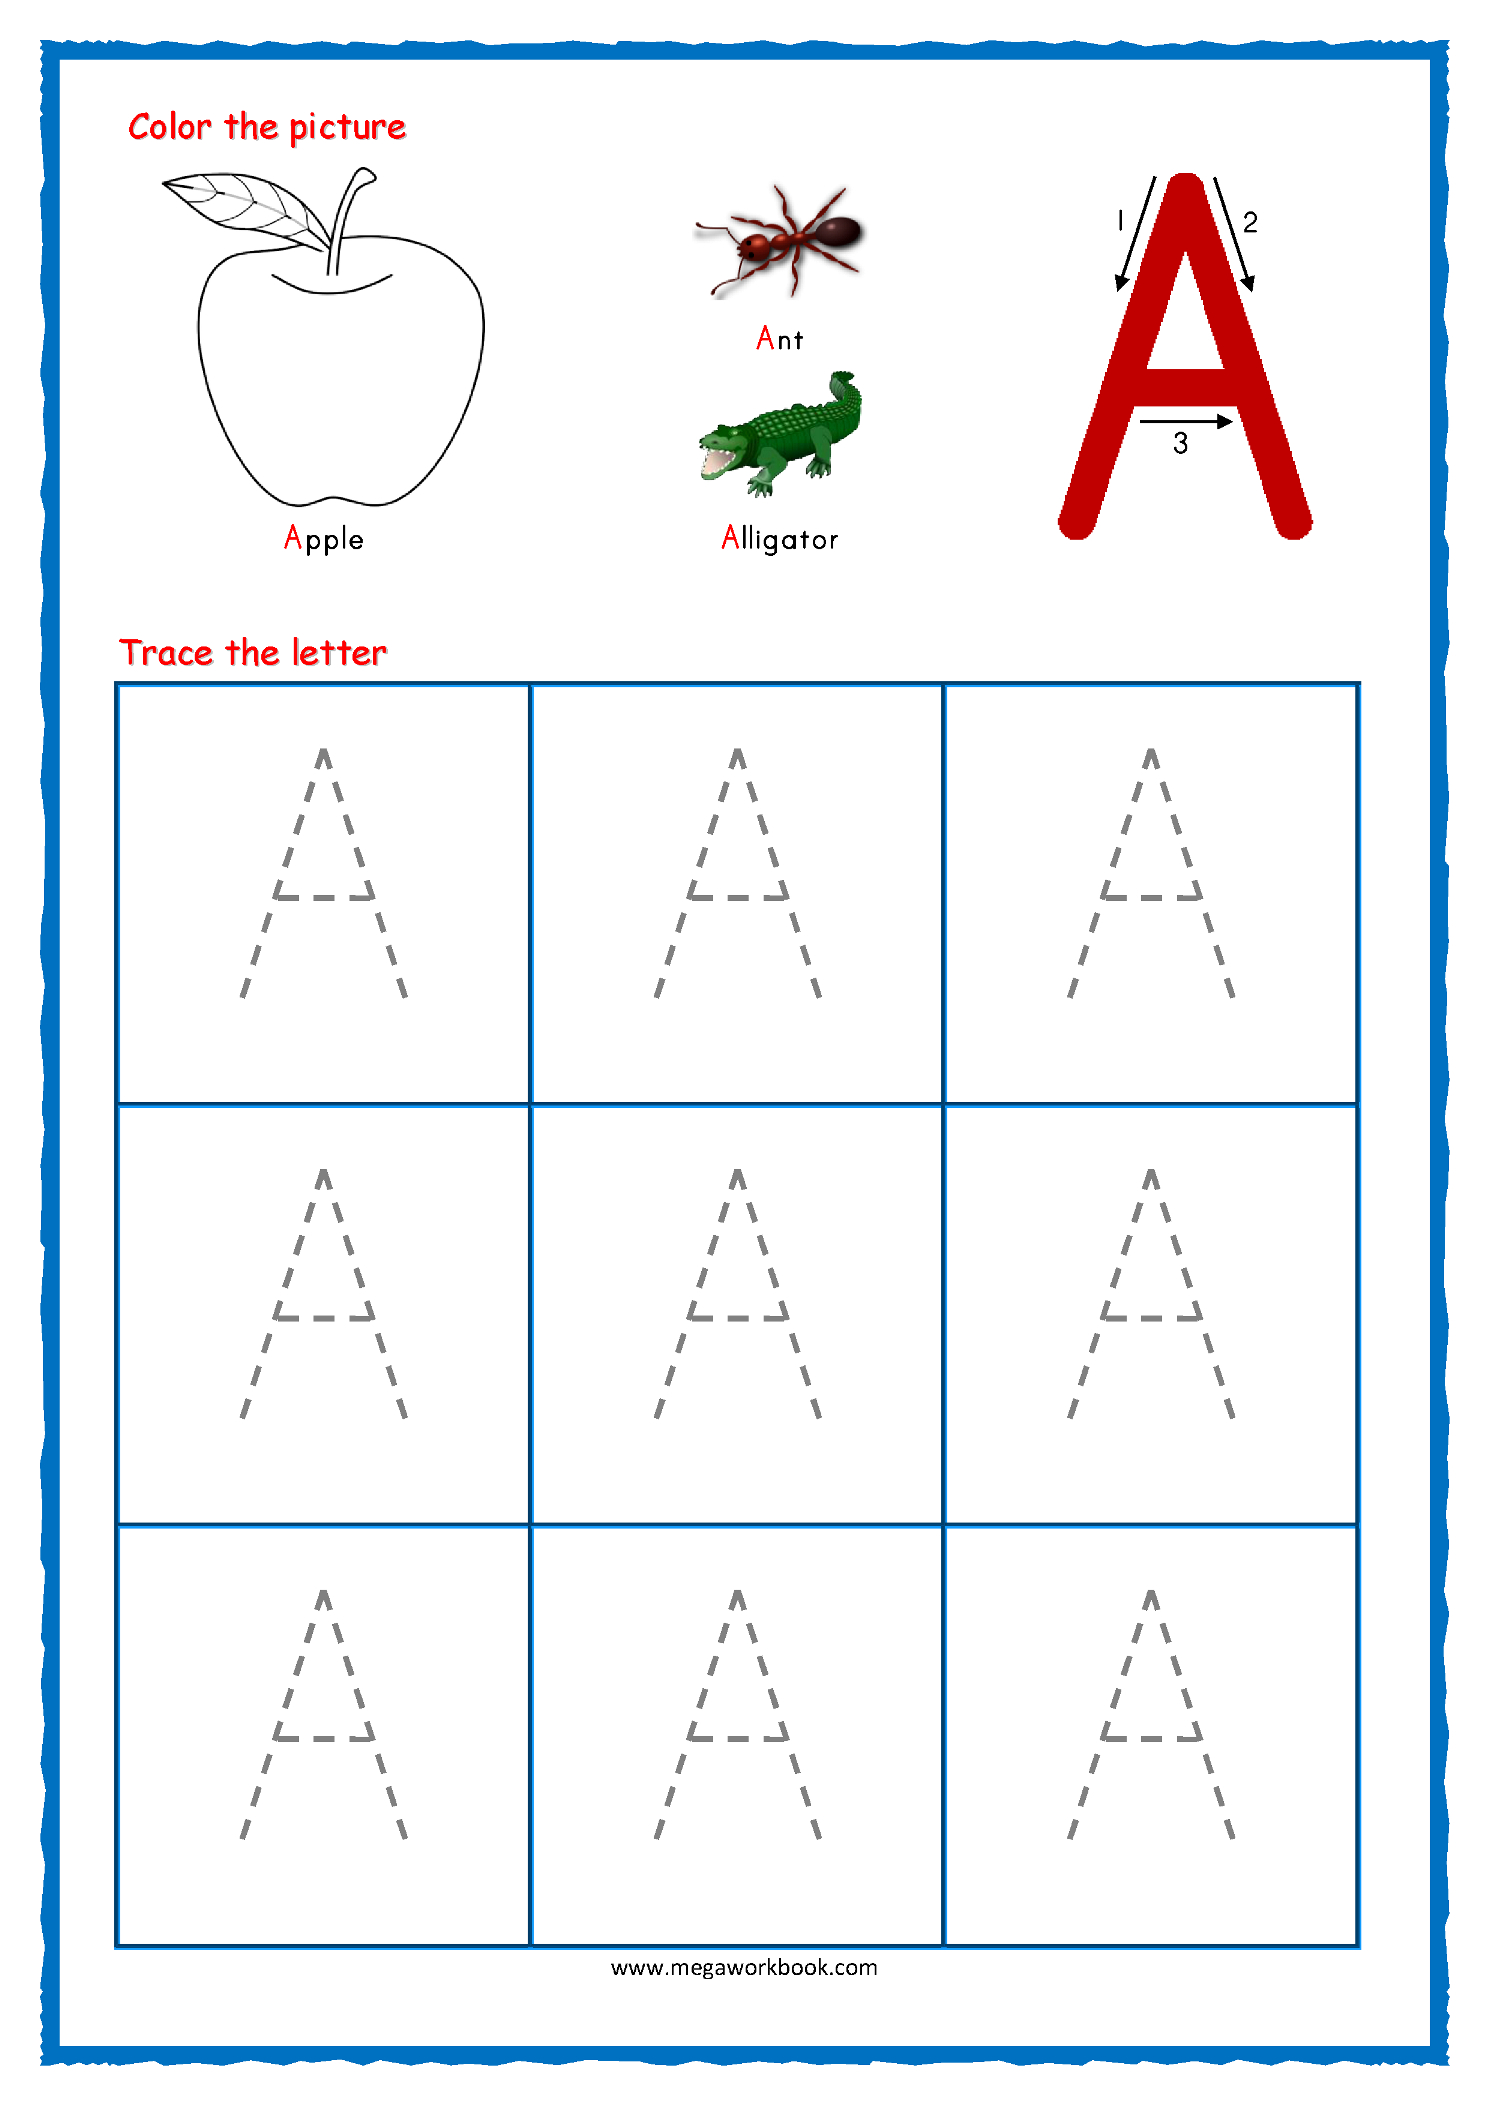 Coloring Book : Coloring Book Alphabet Tracing Worksheets within Printable Tracing Letters Free